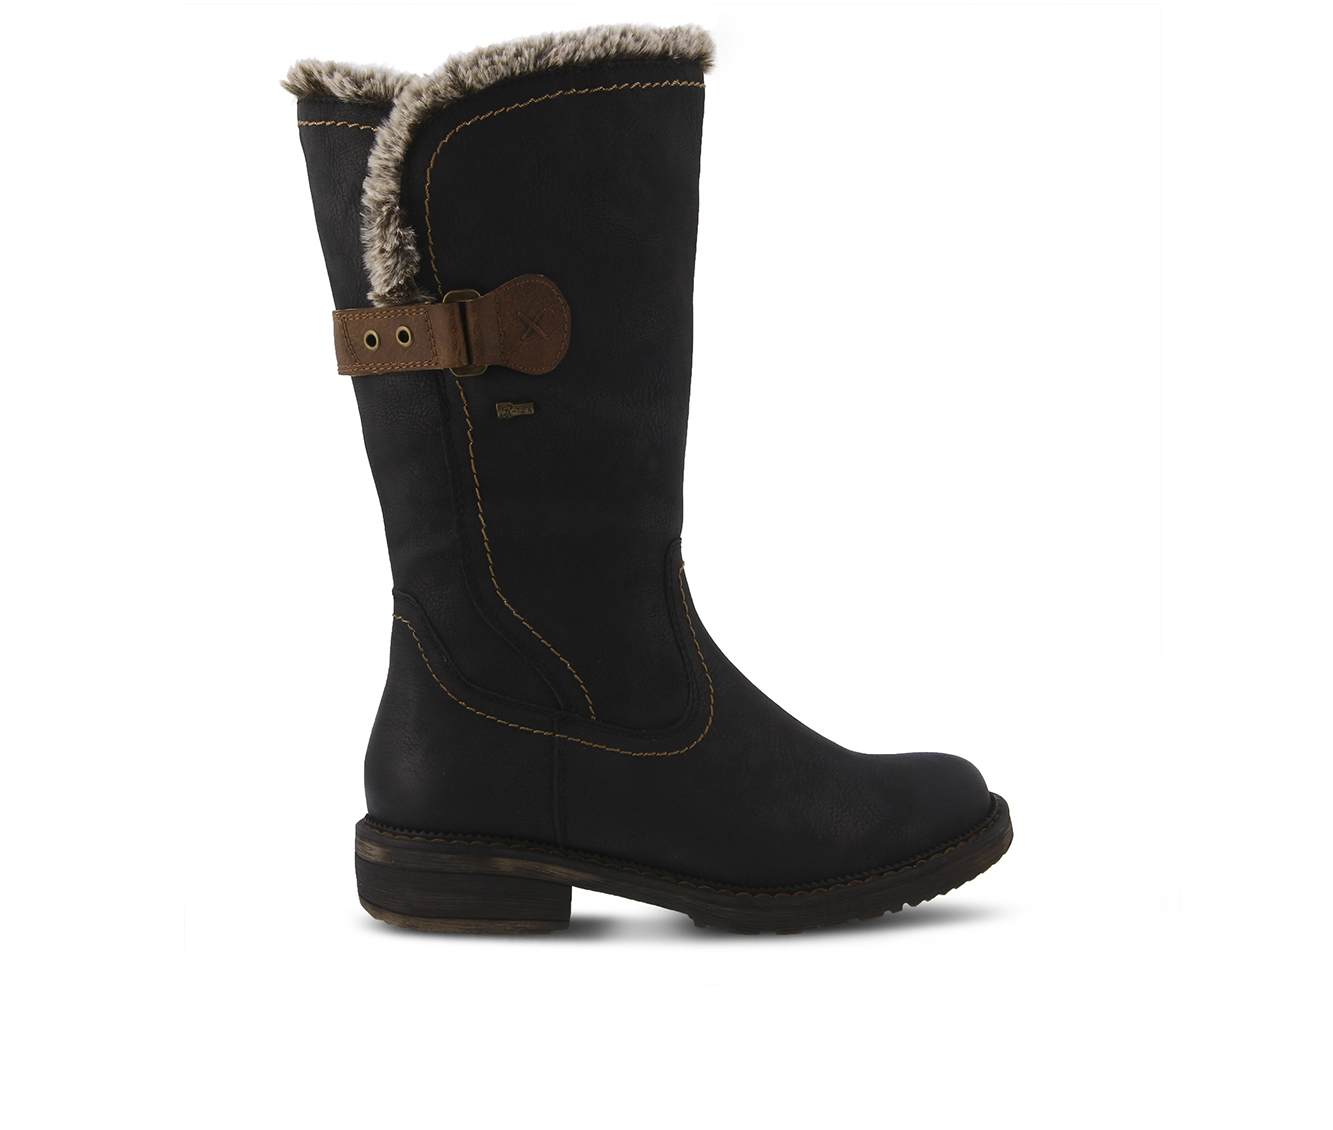 SPRING STEP Cagliari Women's Boots (Black Faux Leather)